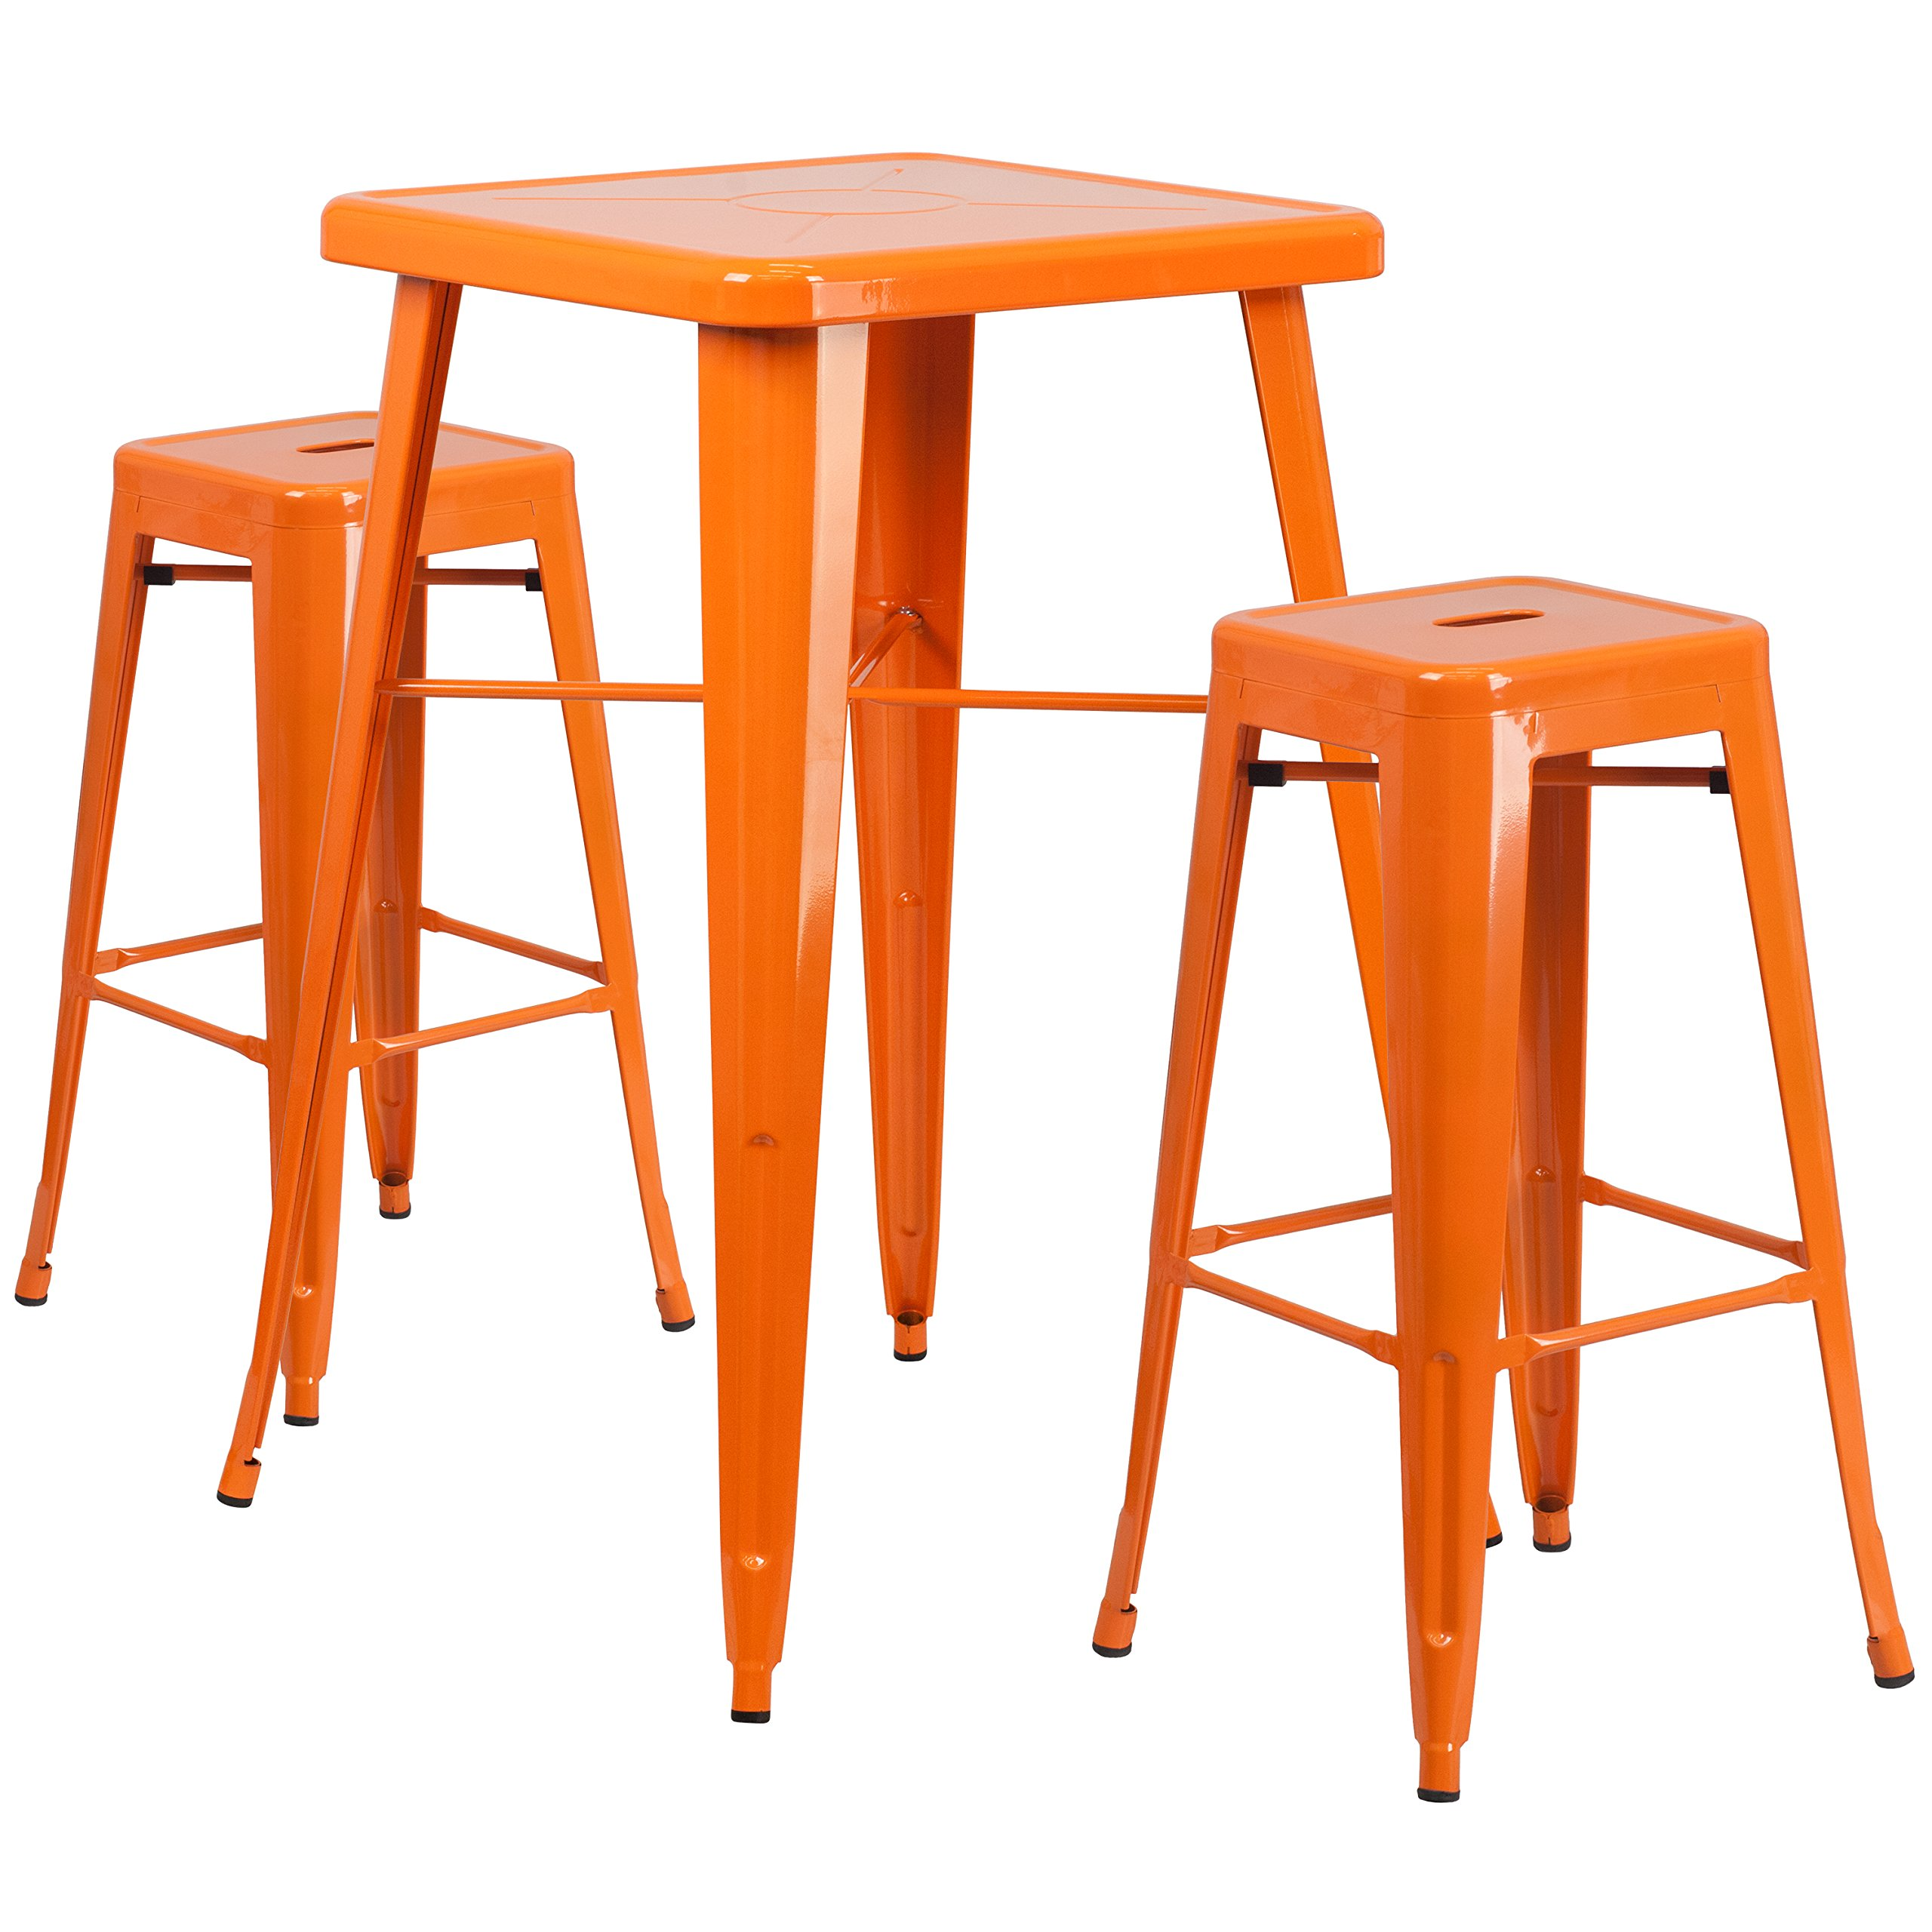 Flash Furniture 23.75'' Square Orange Metal Indoor-Outdoor Bar Table Set with 2 Square Seat Backless Stools by Flash Furniture (Image #1)